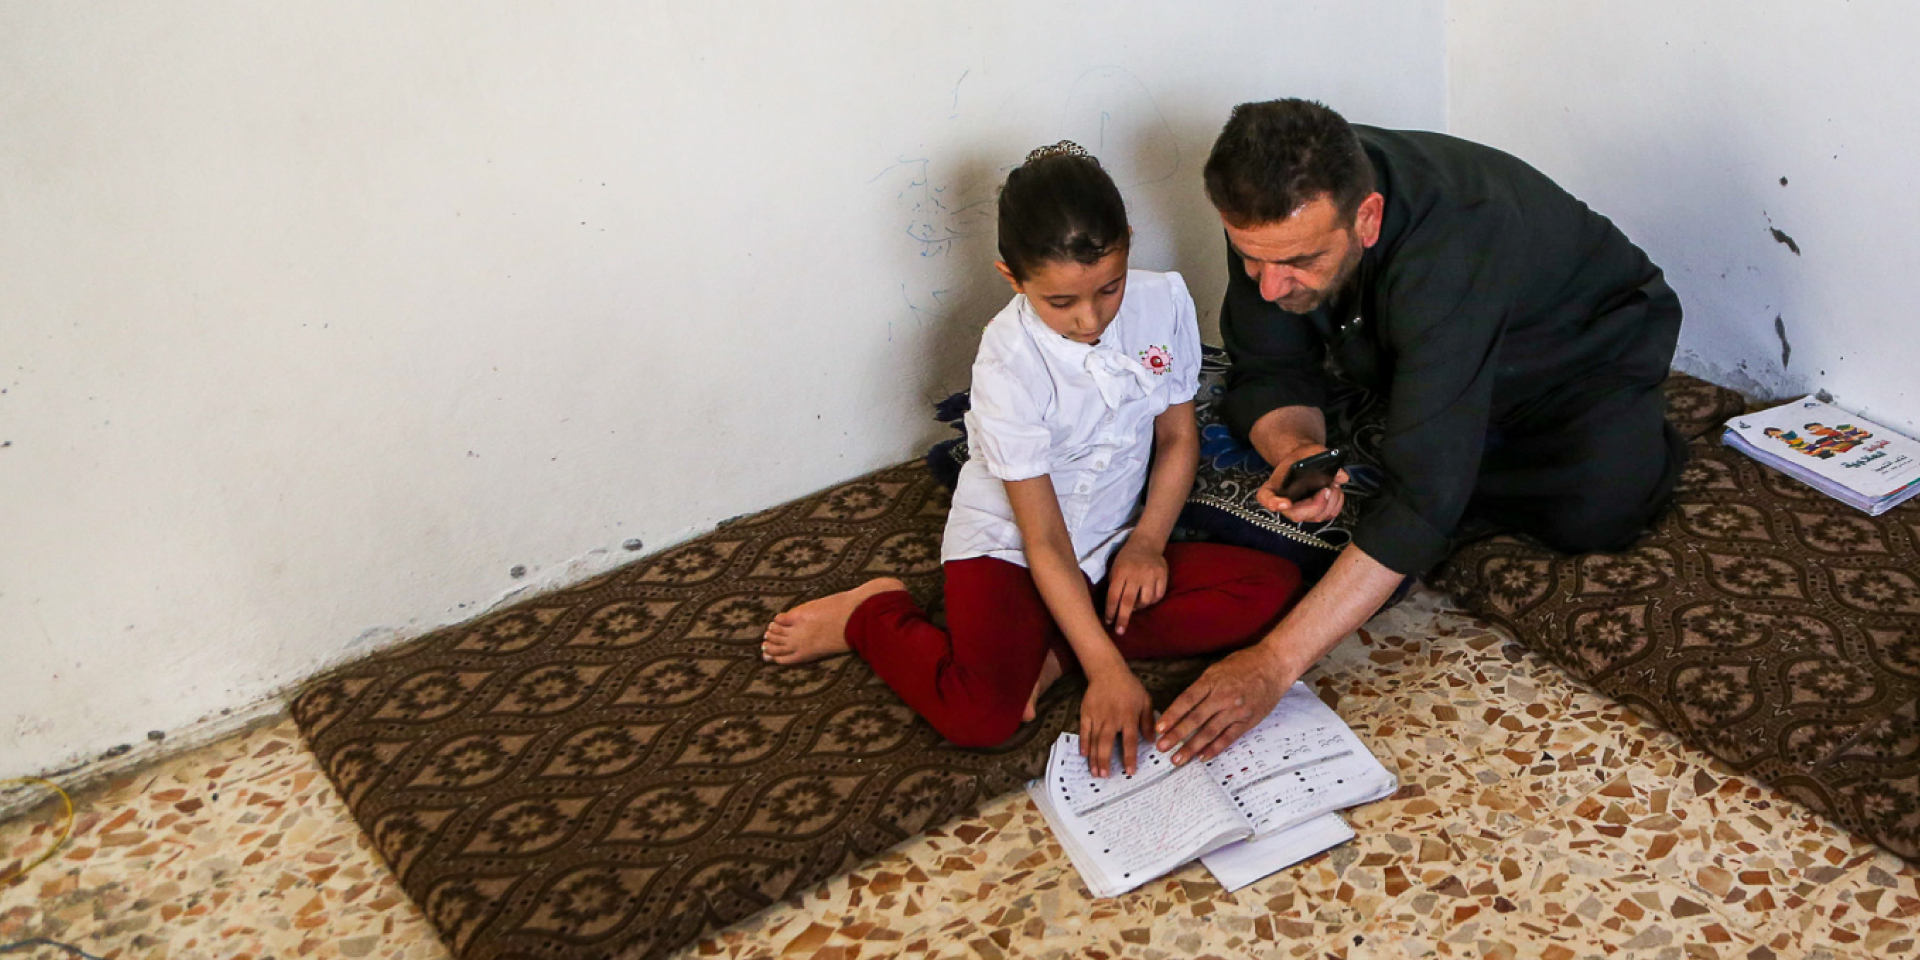 In Northwestern Syria, Rama and her father, Fadi, use his smartphone to watch a virtual Arabic class on WhatsApp, supplemented by textbooks.